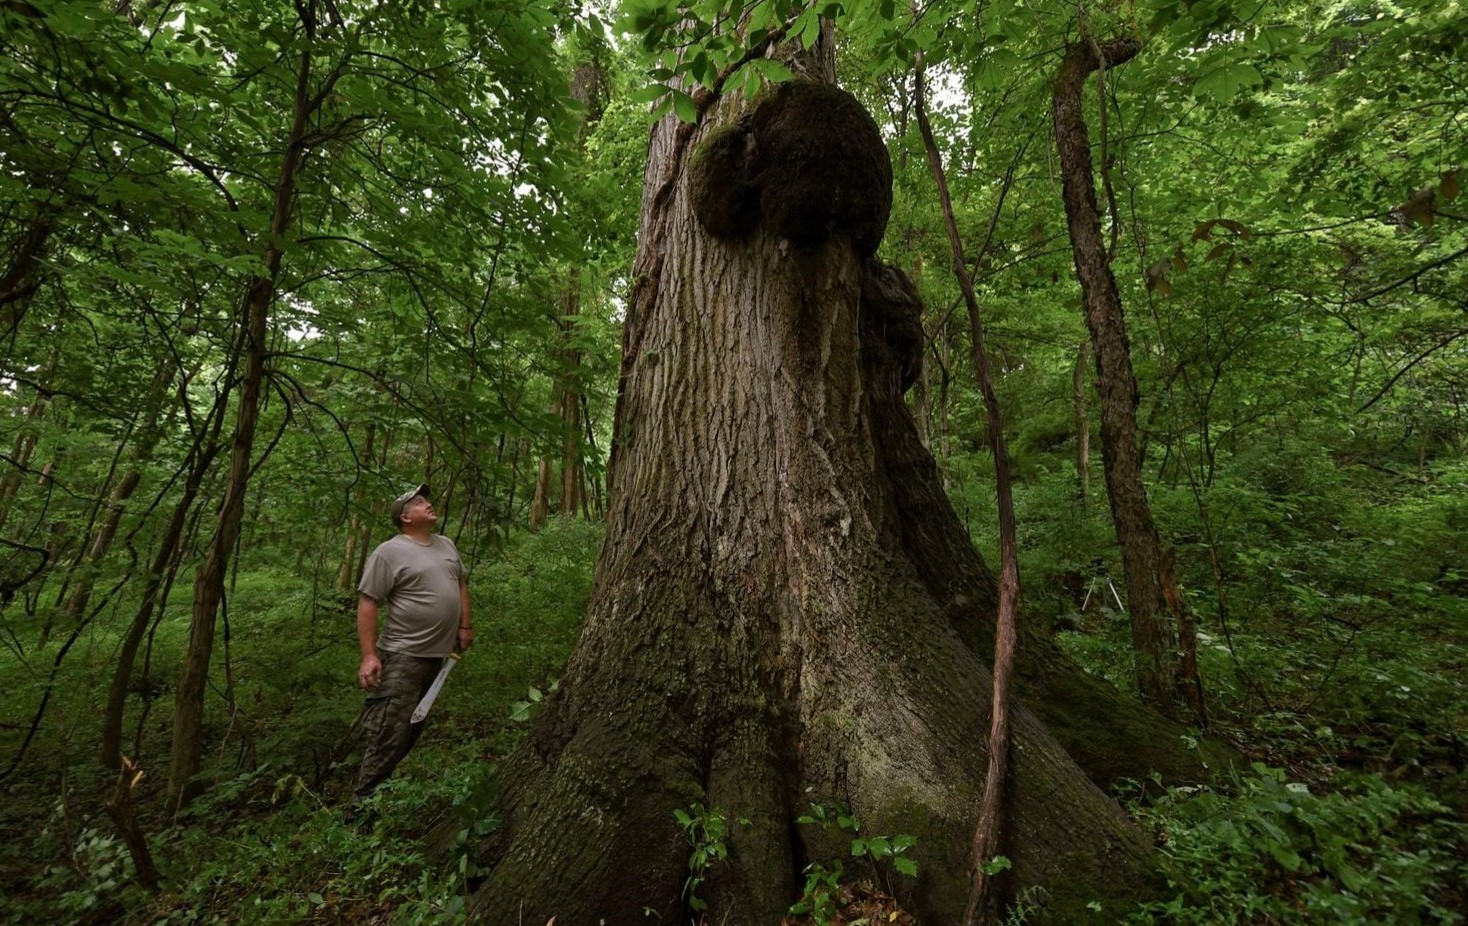 Despite Recent Discovery Near Pittsburgh, Delco Still Home to State's Largest Red Oak Tree